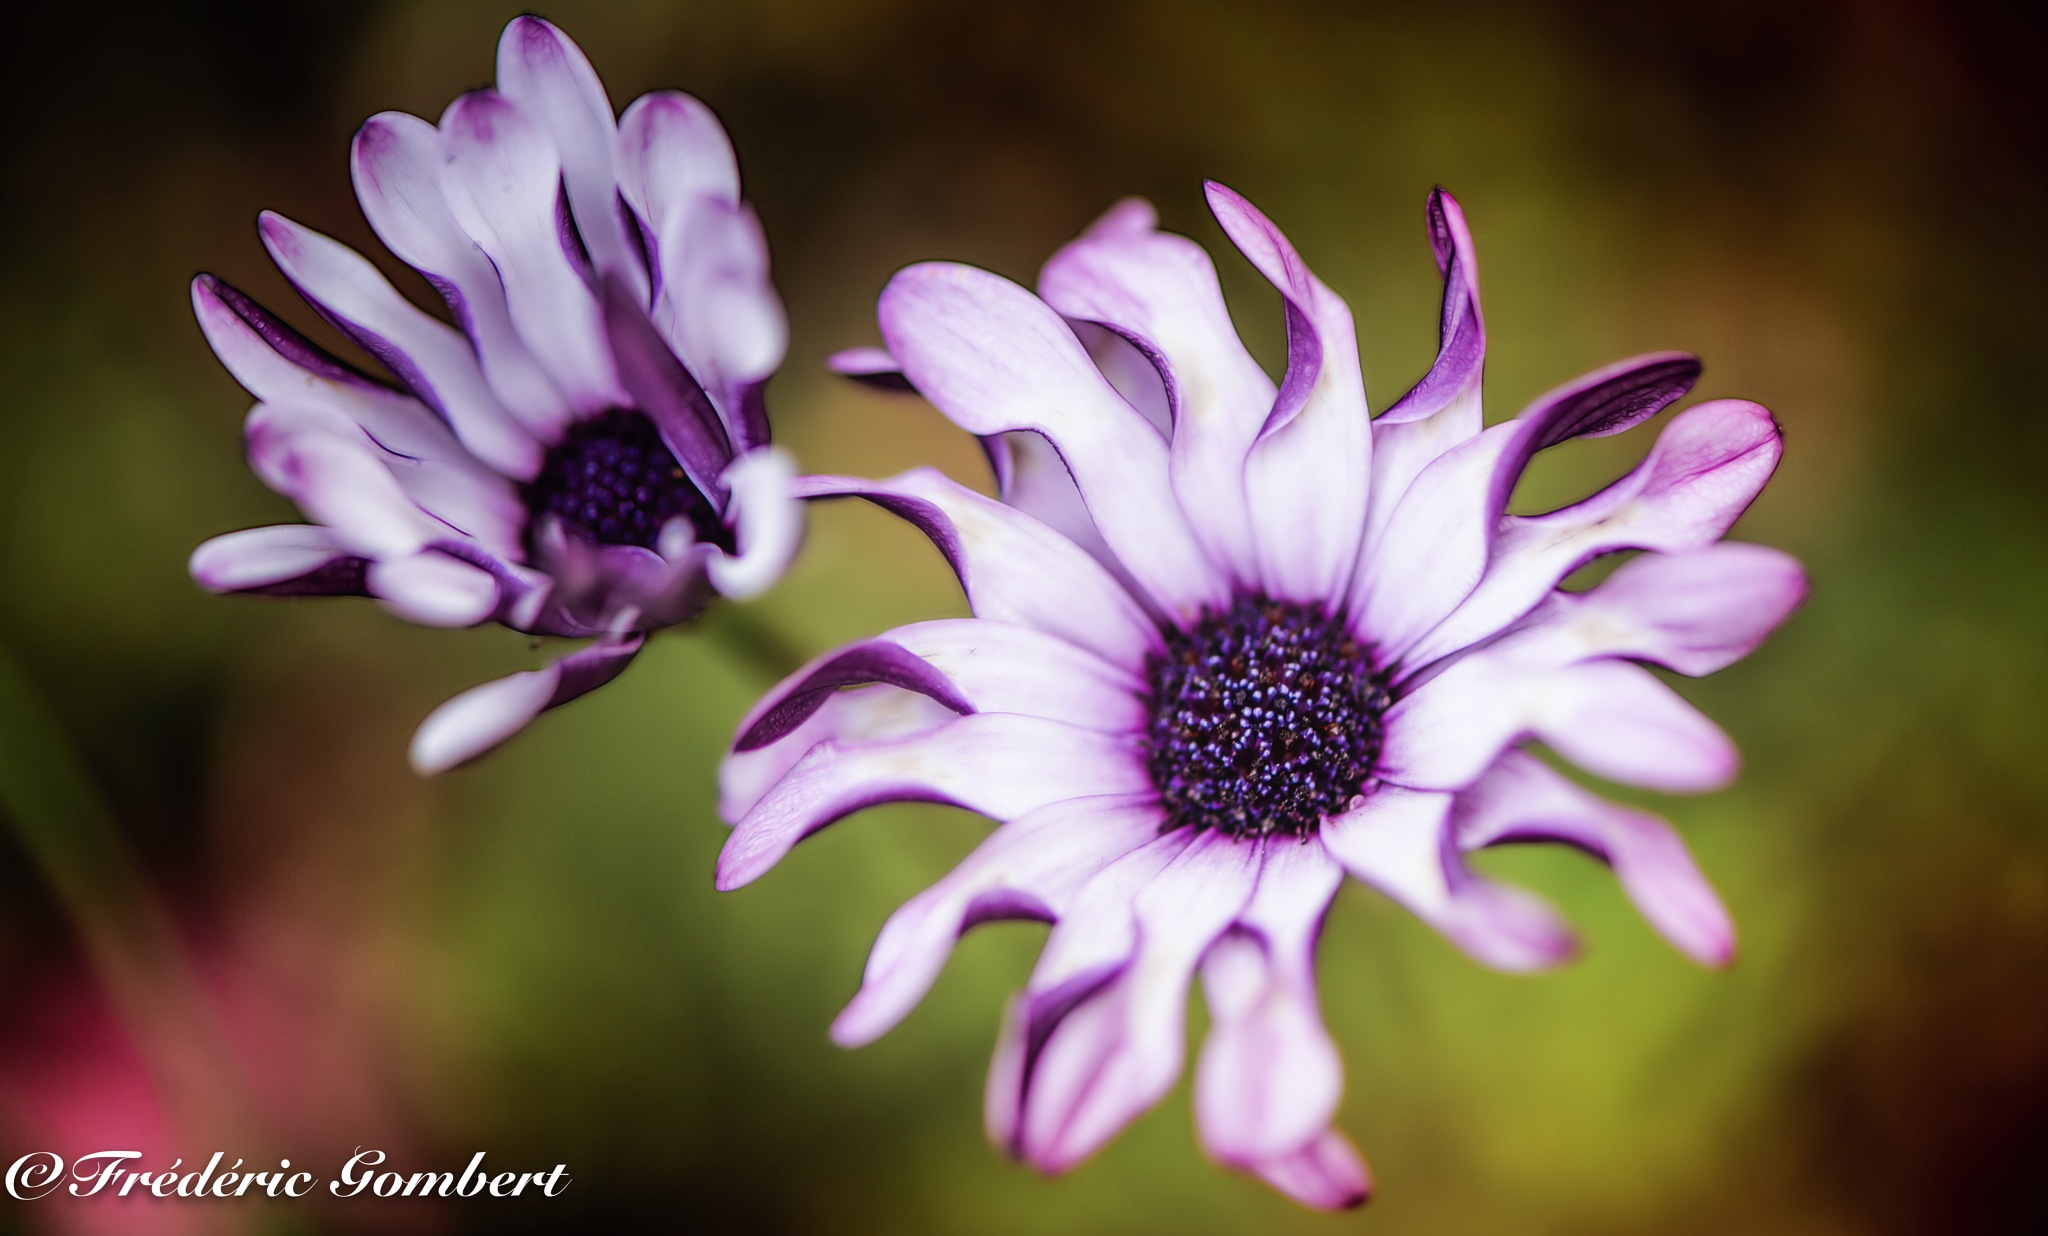 2 by Frederic Gombert